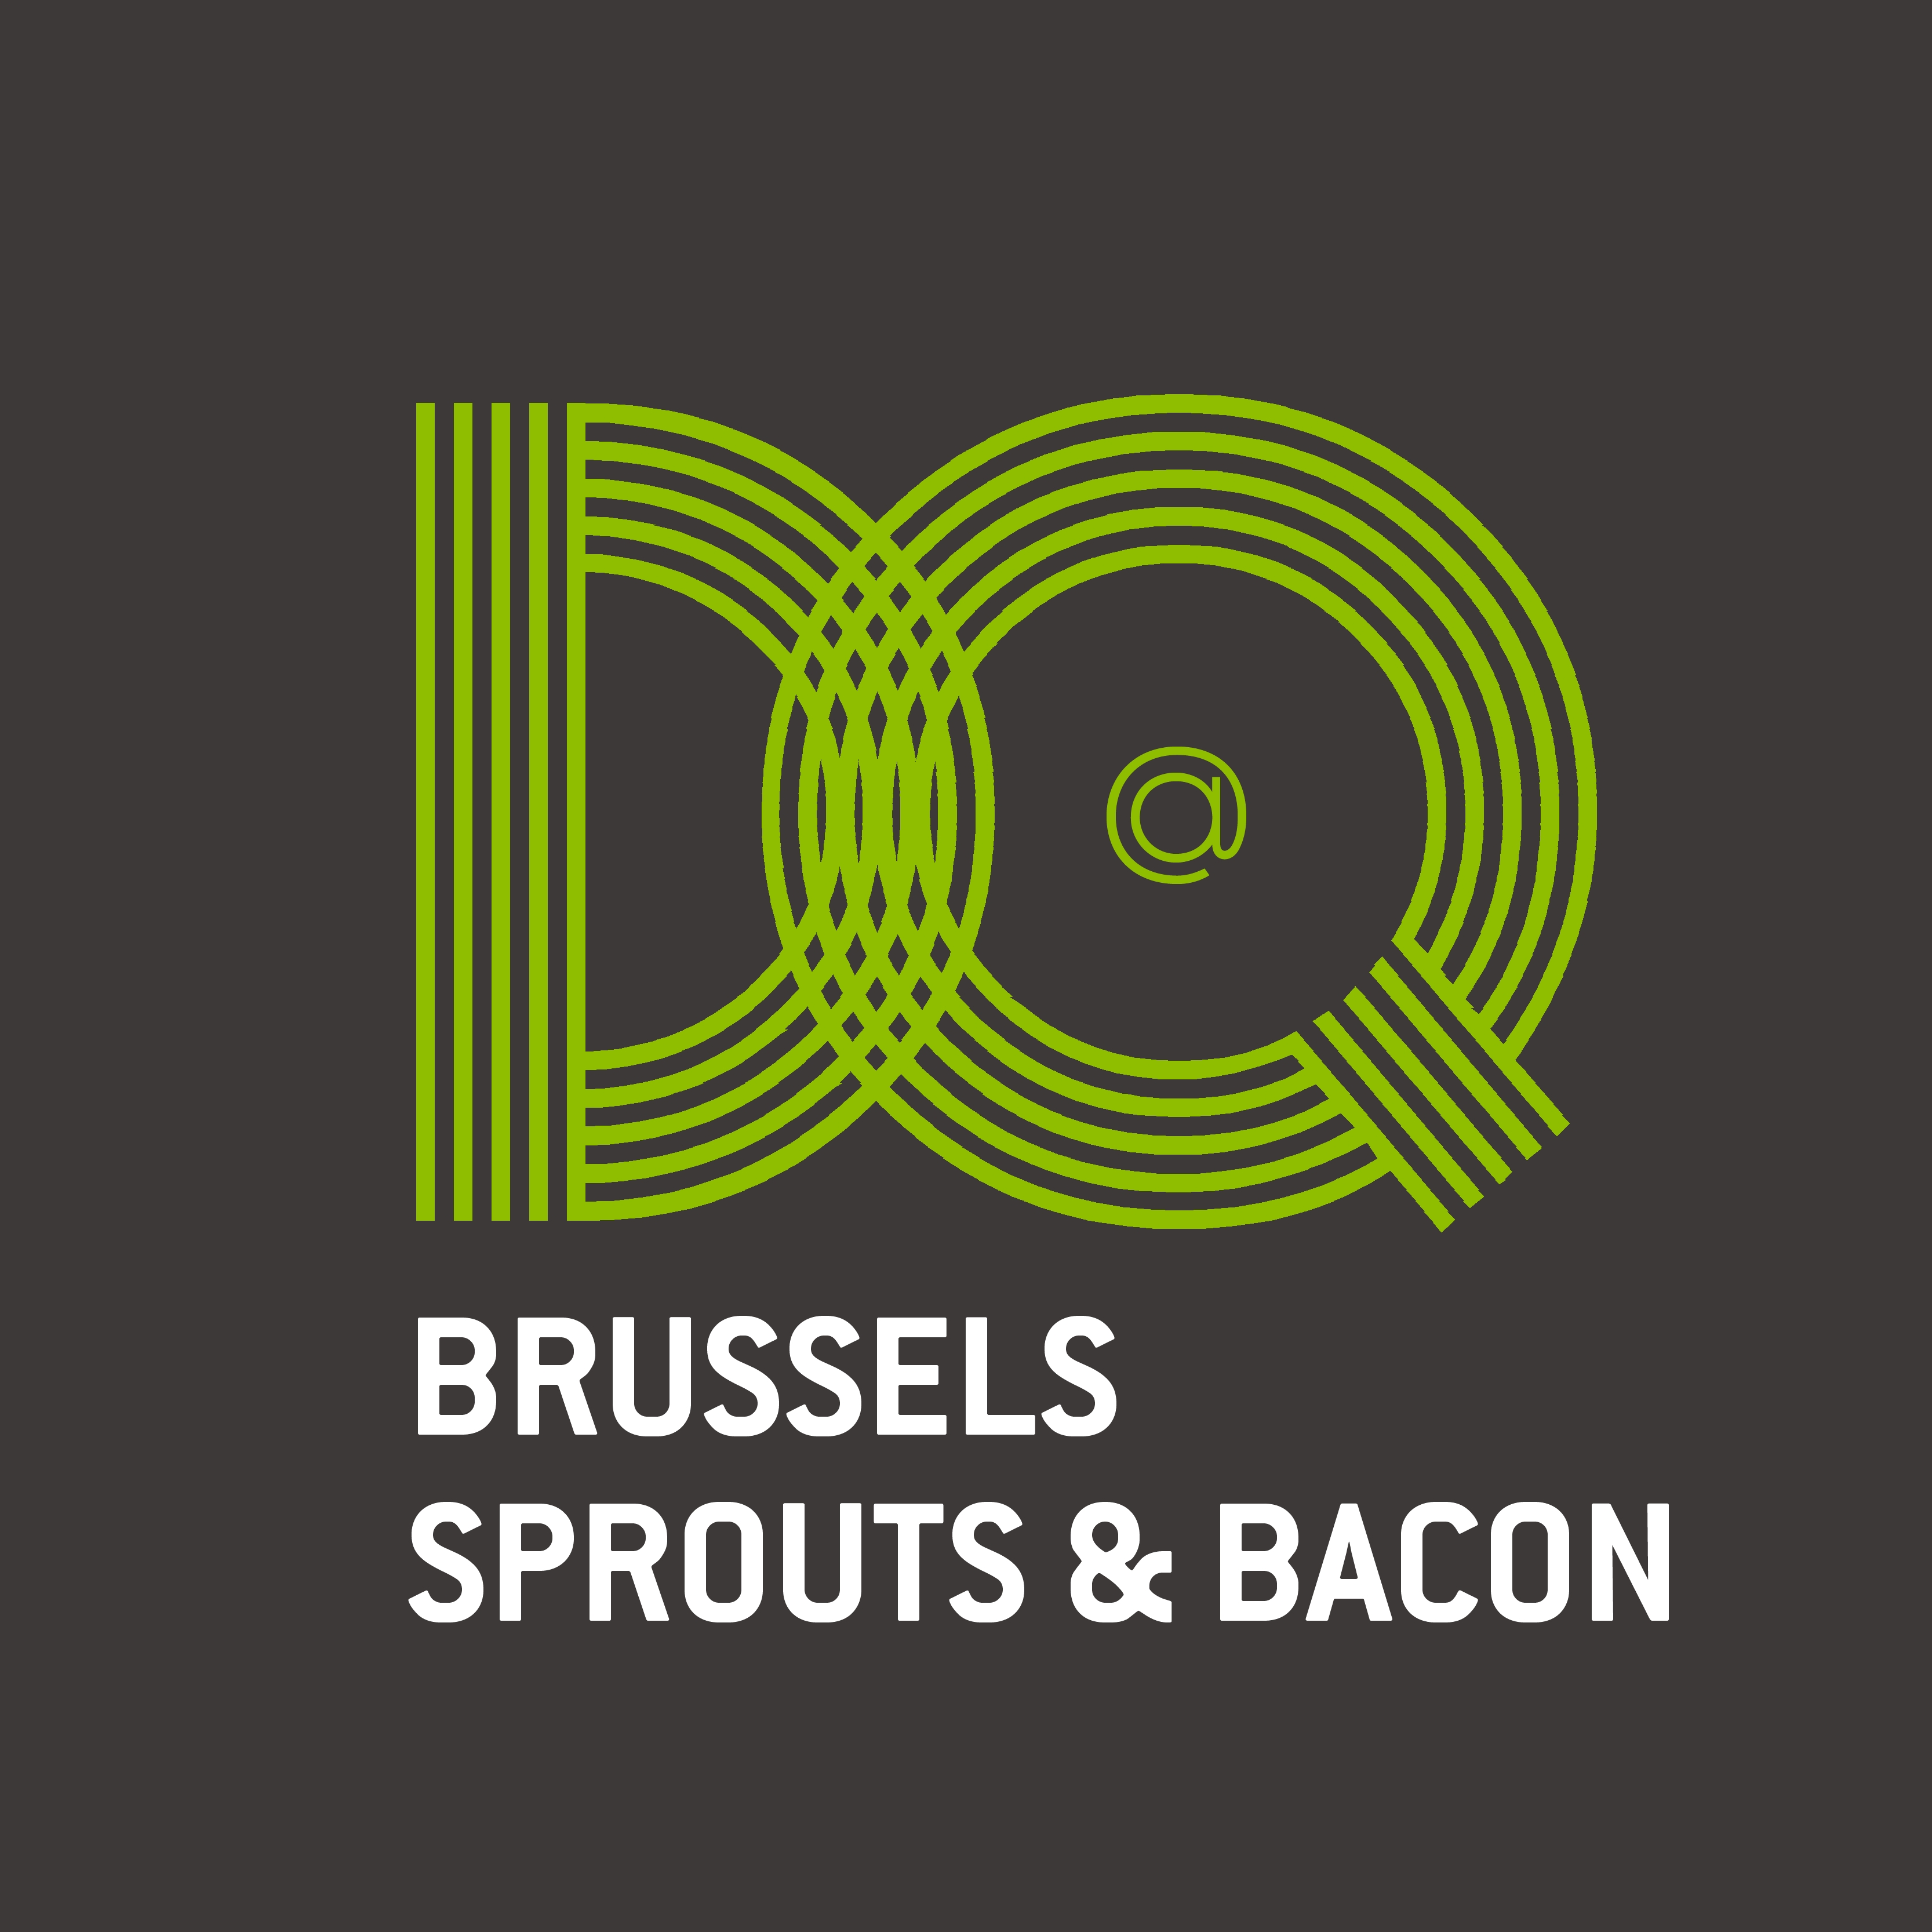 14. DQ - BRUSSELS SPROUTS